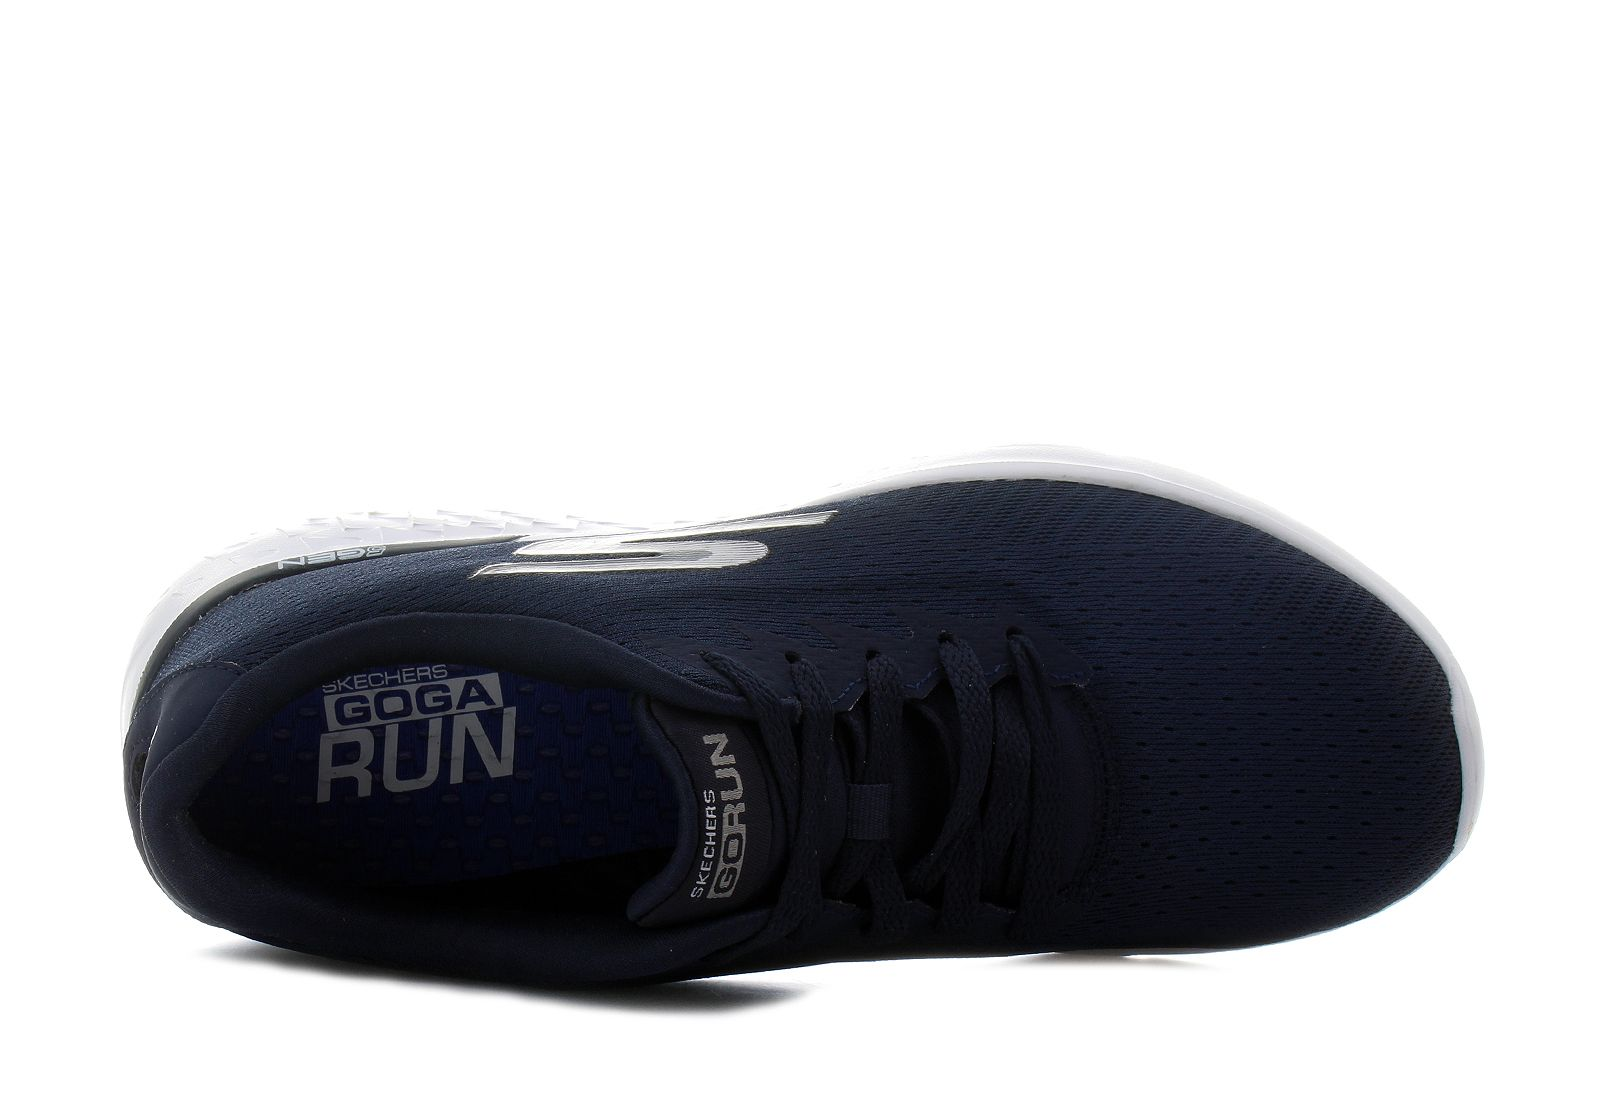 Shop Boots 54354 Skechers Online Generate Nvy SneakersAnd For Shoes H2YIEWD9